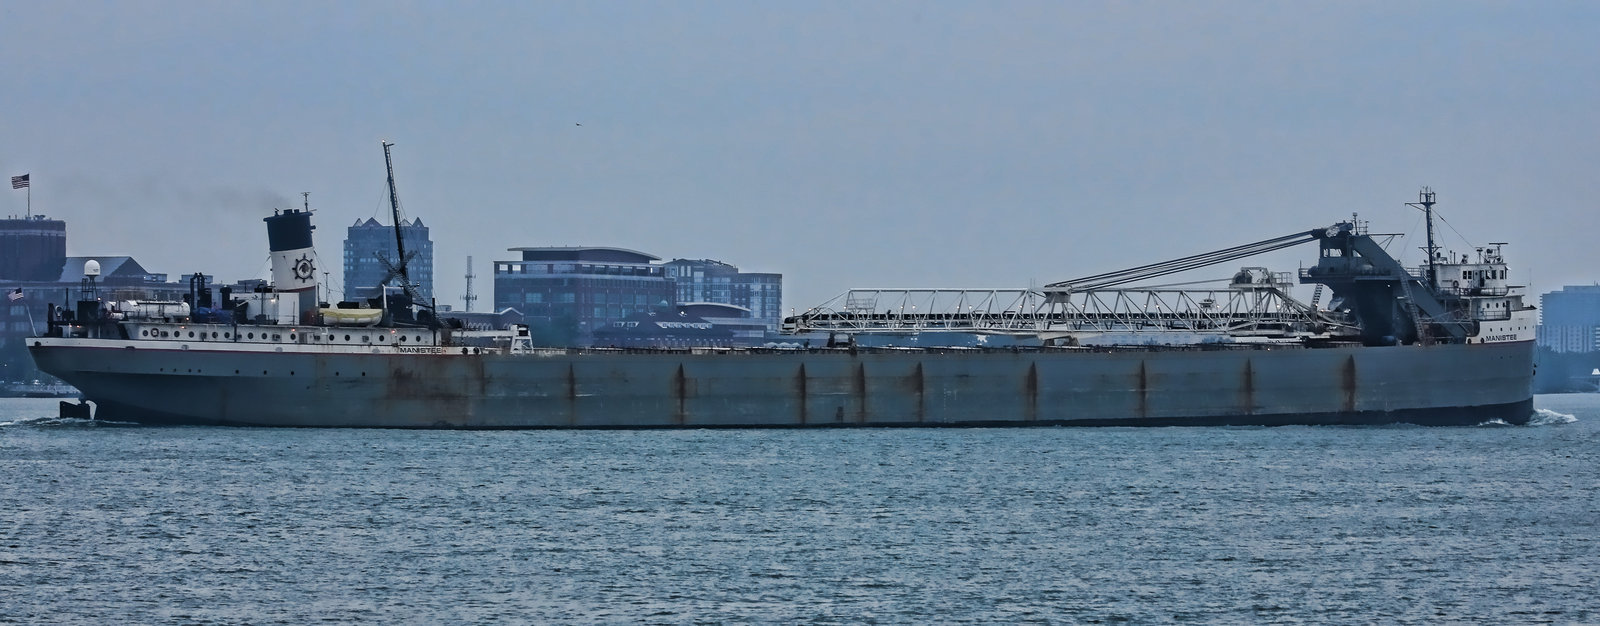 Manistee; upbound